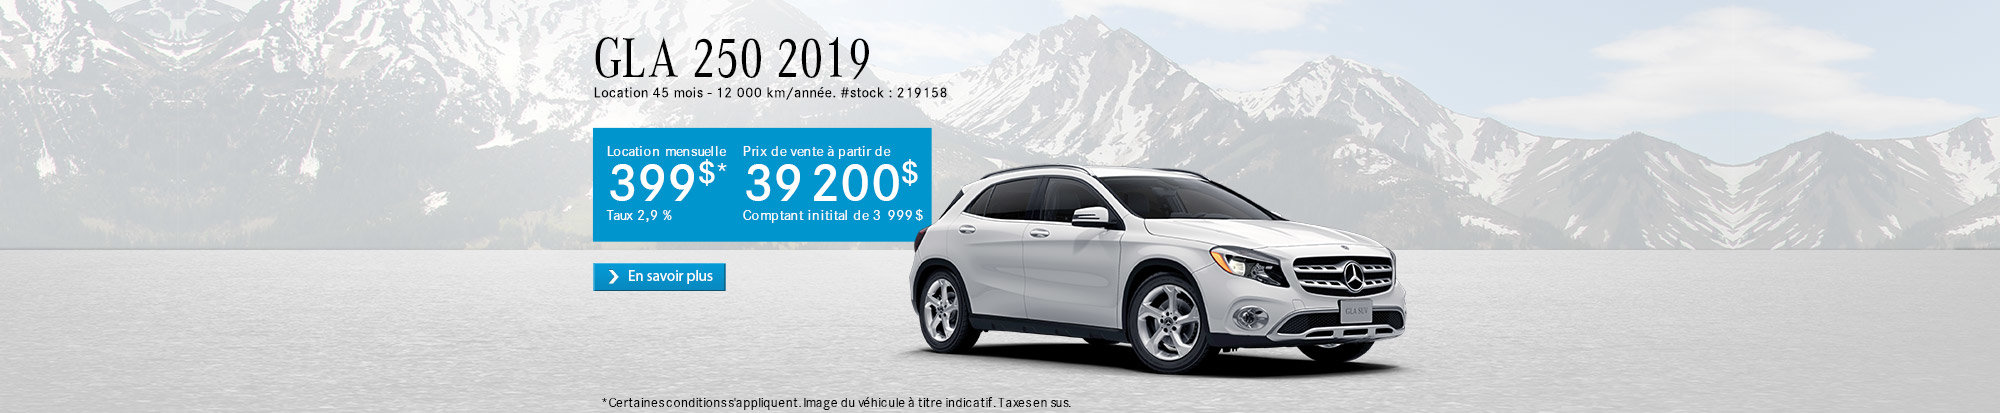 GLA 250 4MATIC 2019